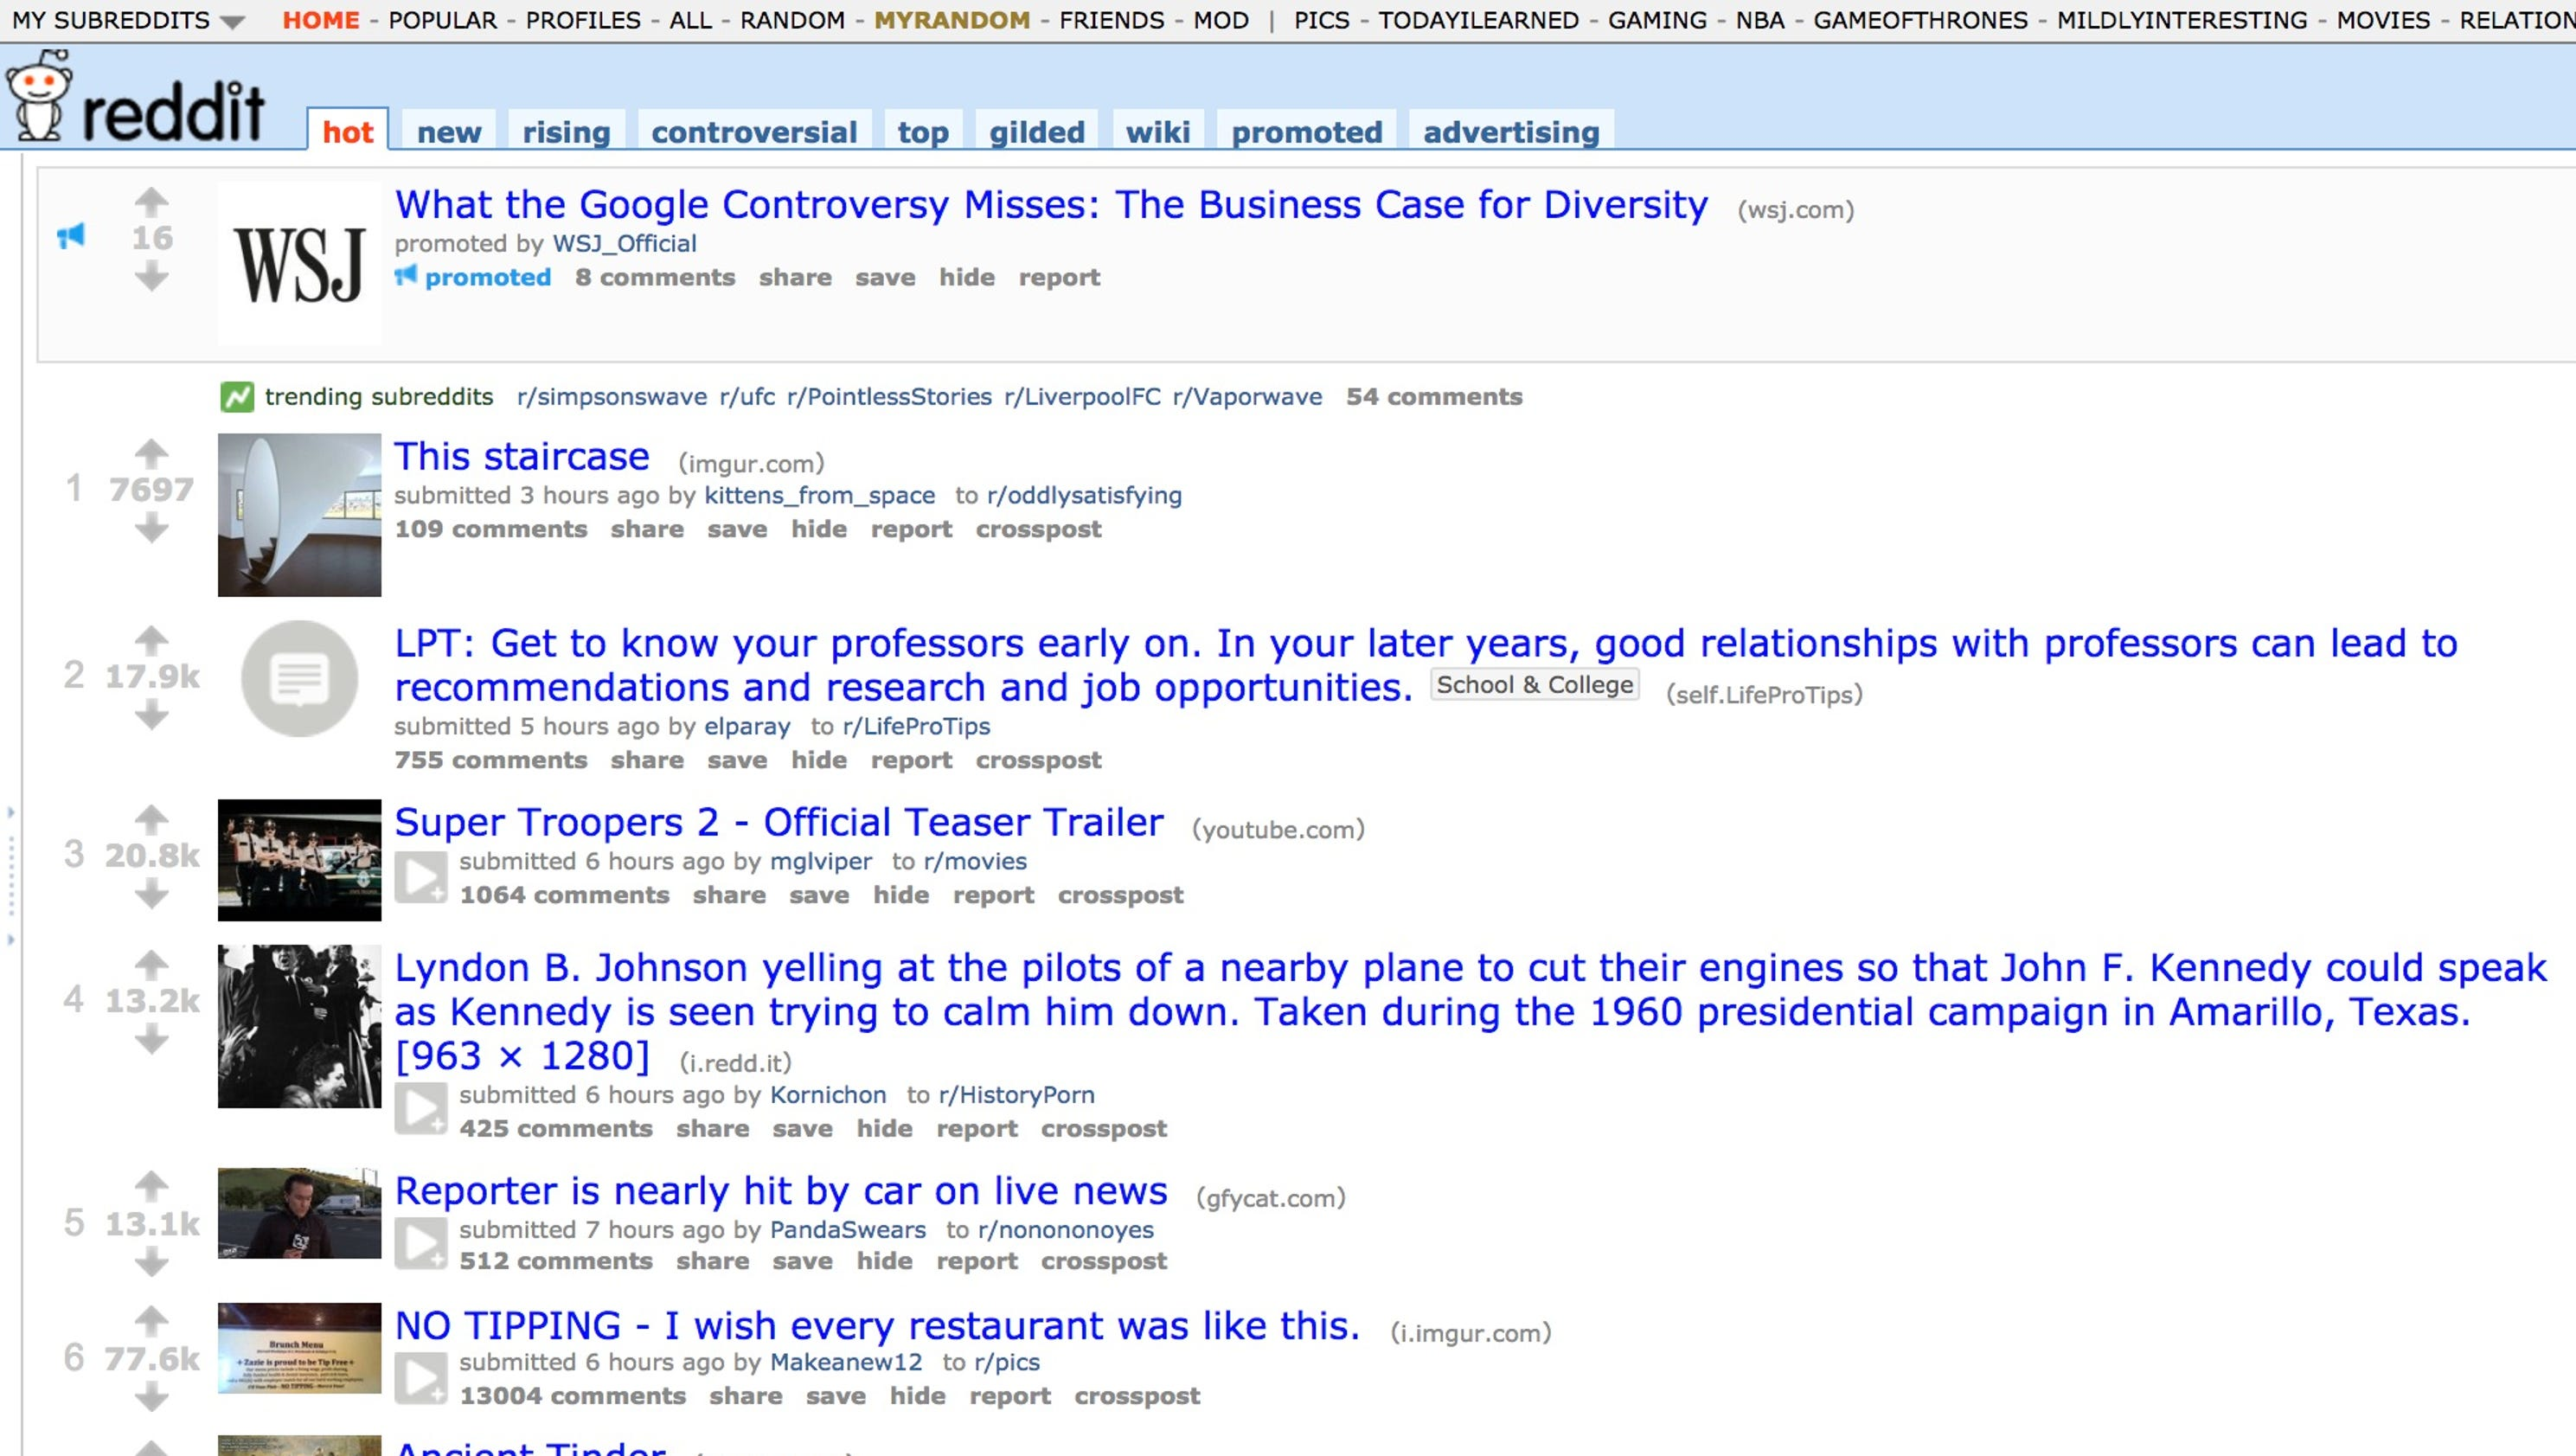 reddit: a parent's guide to the 'front page of the internet'